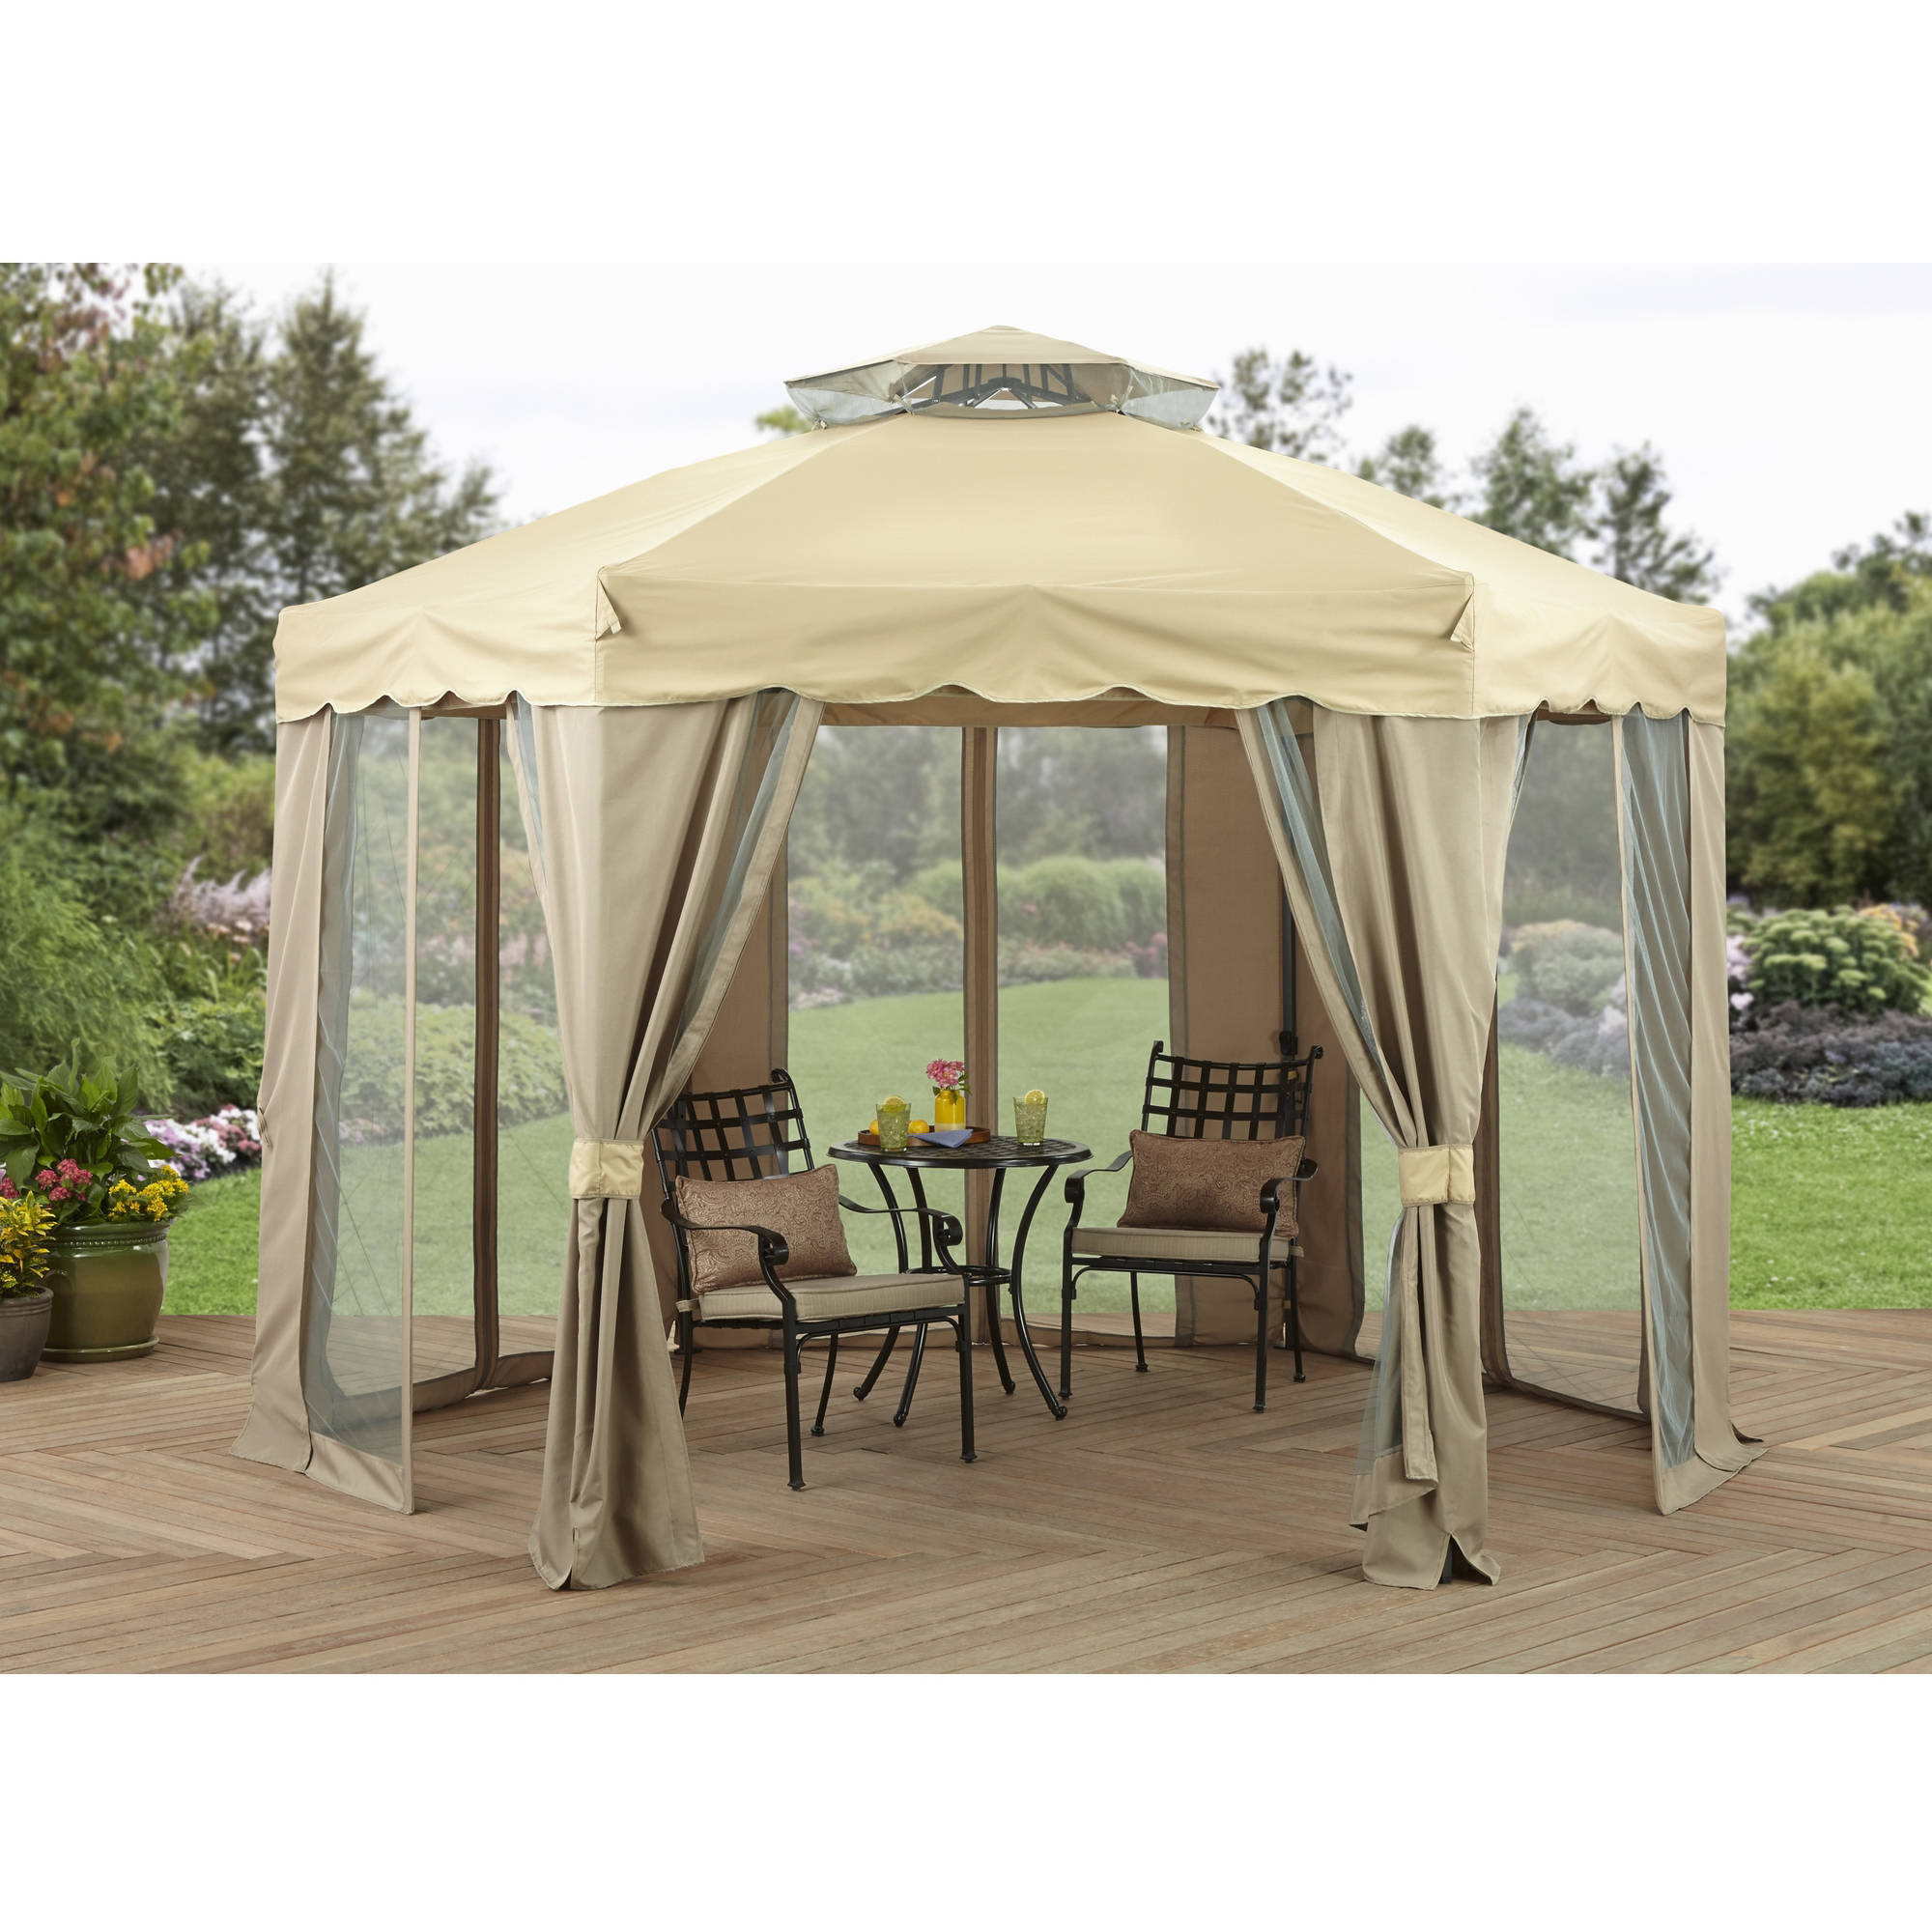 Better Homes and Gardens 12u0027 x 12u0027 Outdoor Gilded Grove Gazebo - Walmart.com  sc 1 st  Walmart & Better Homes and Gardens 12u0027 x 12u0027 Outdoor Gilded Grove Gazebo ...